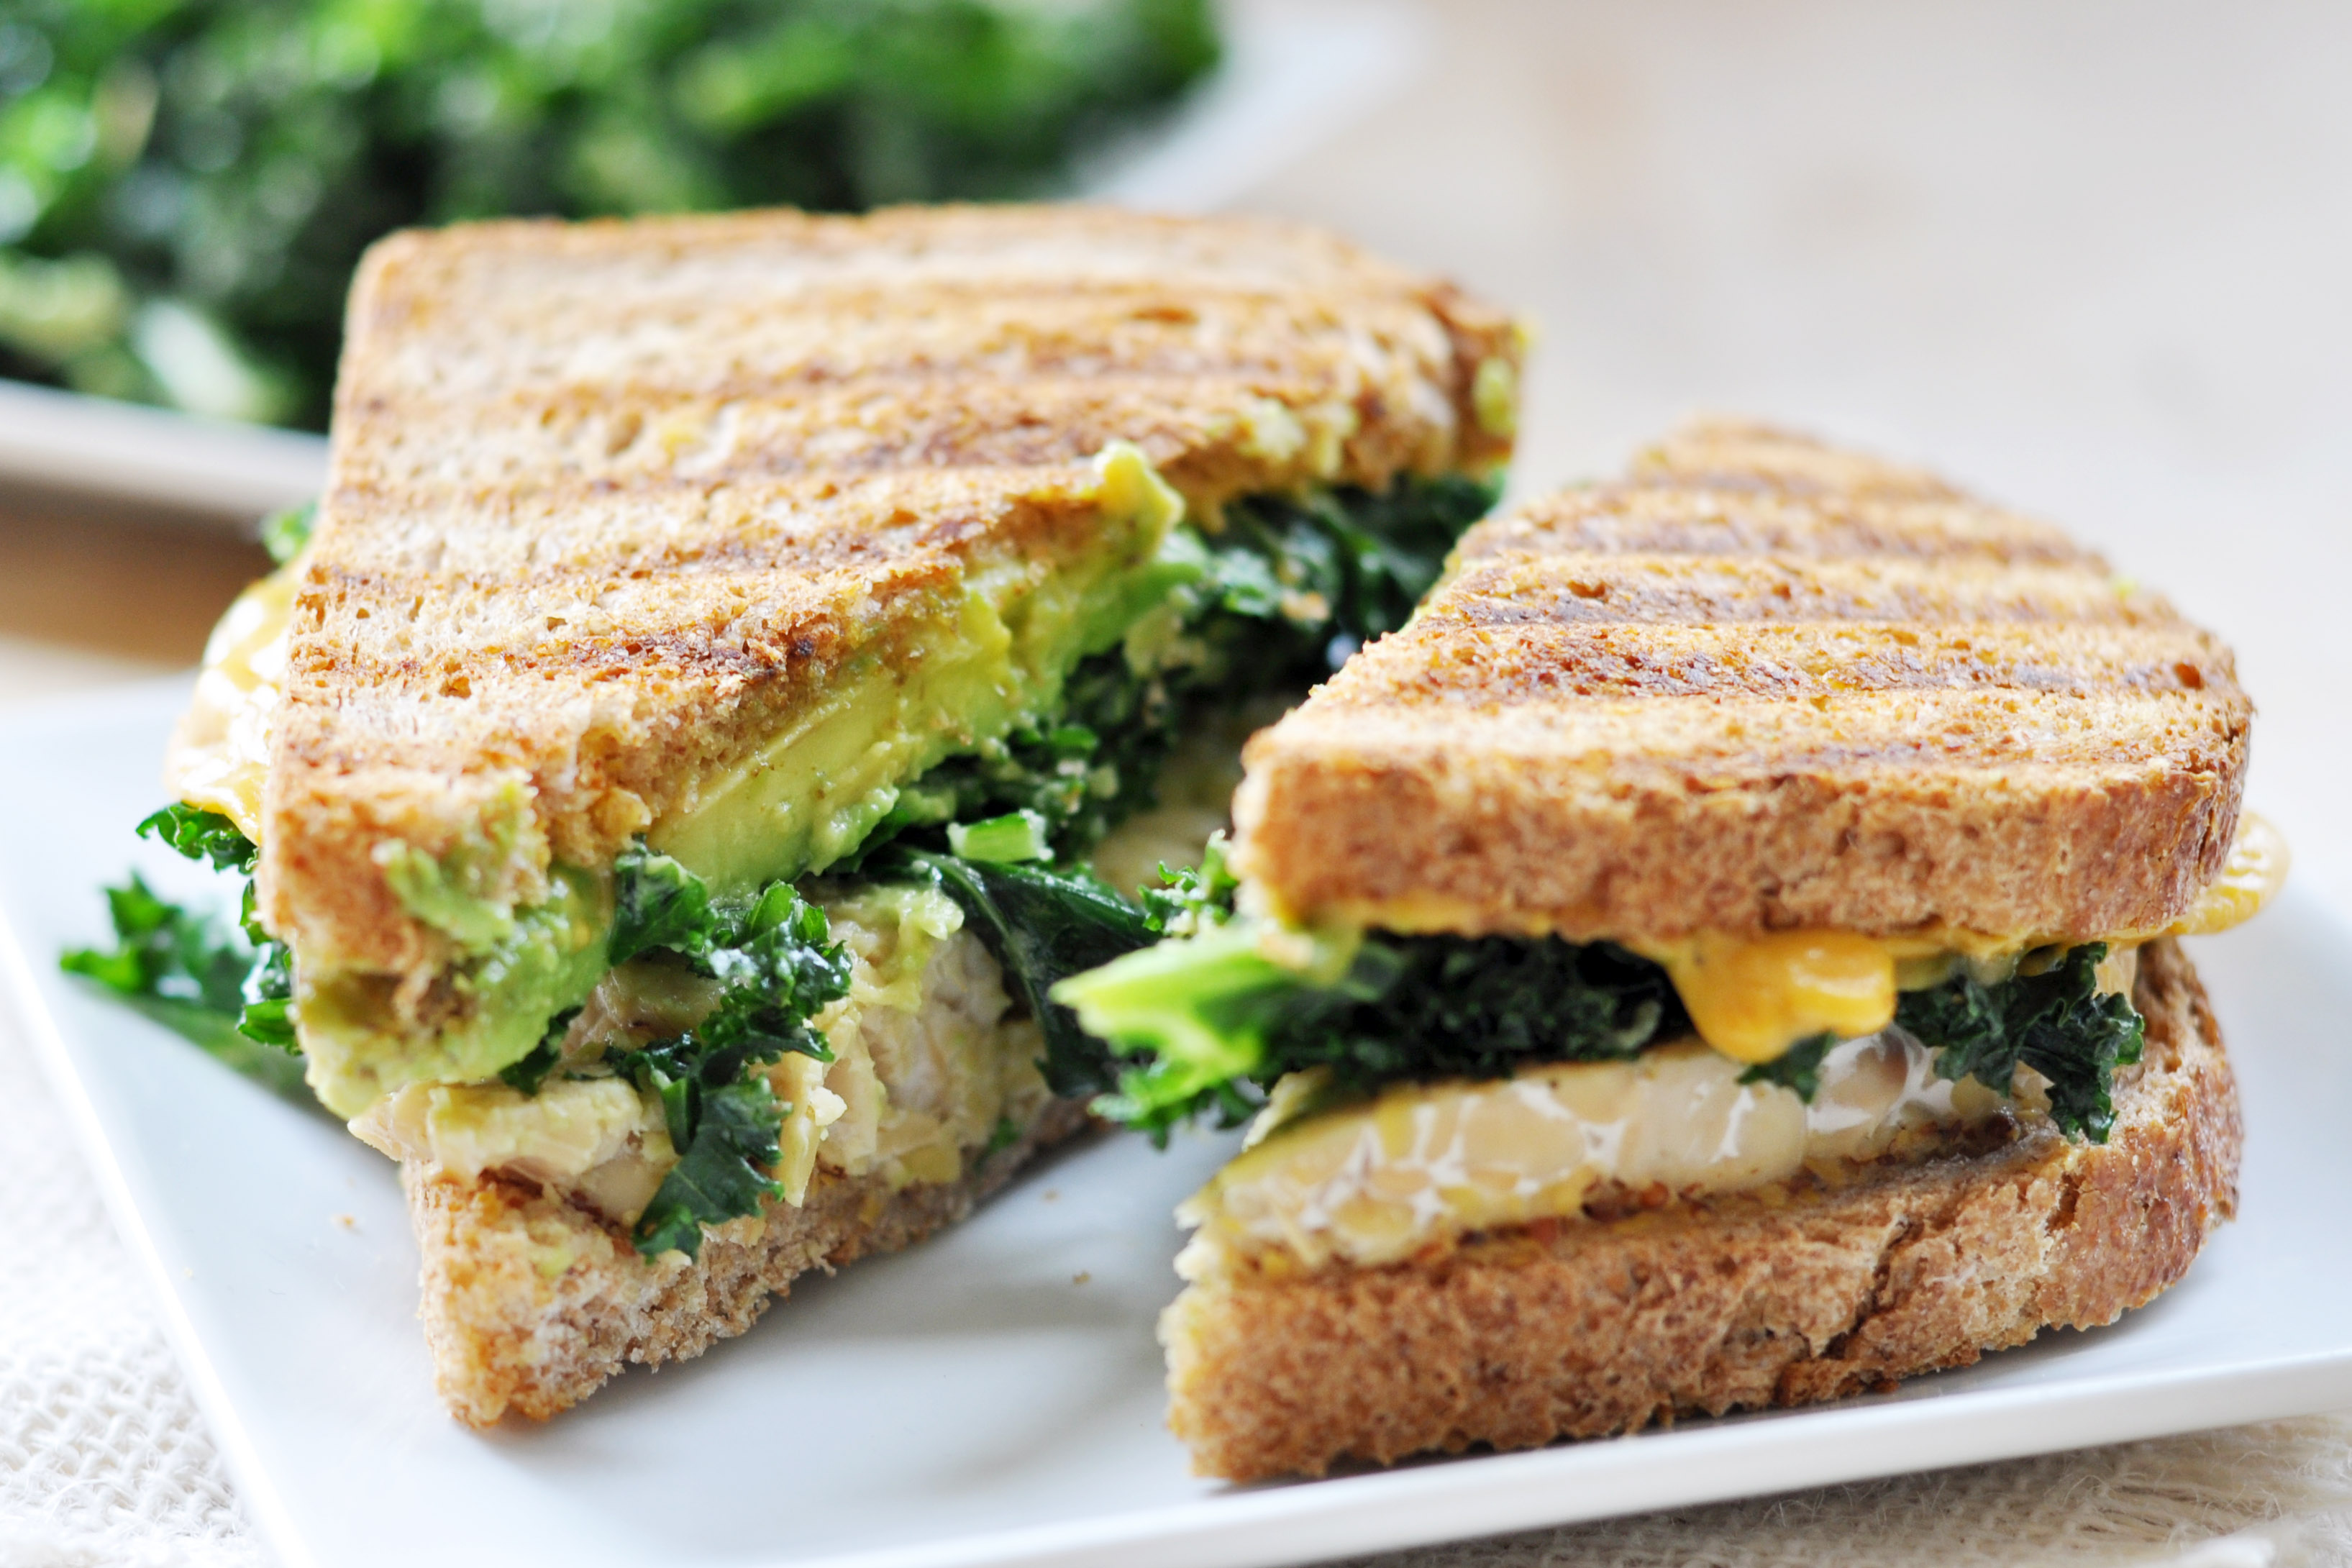 Vegan Grilled Sandwich Magic The Colorful Kitchen